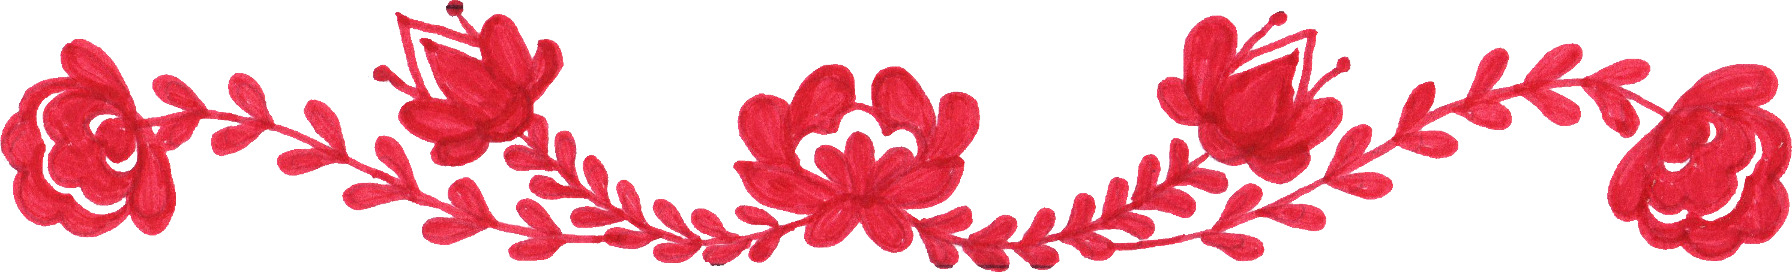 Flower border png. Red drawing transparent